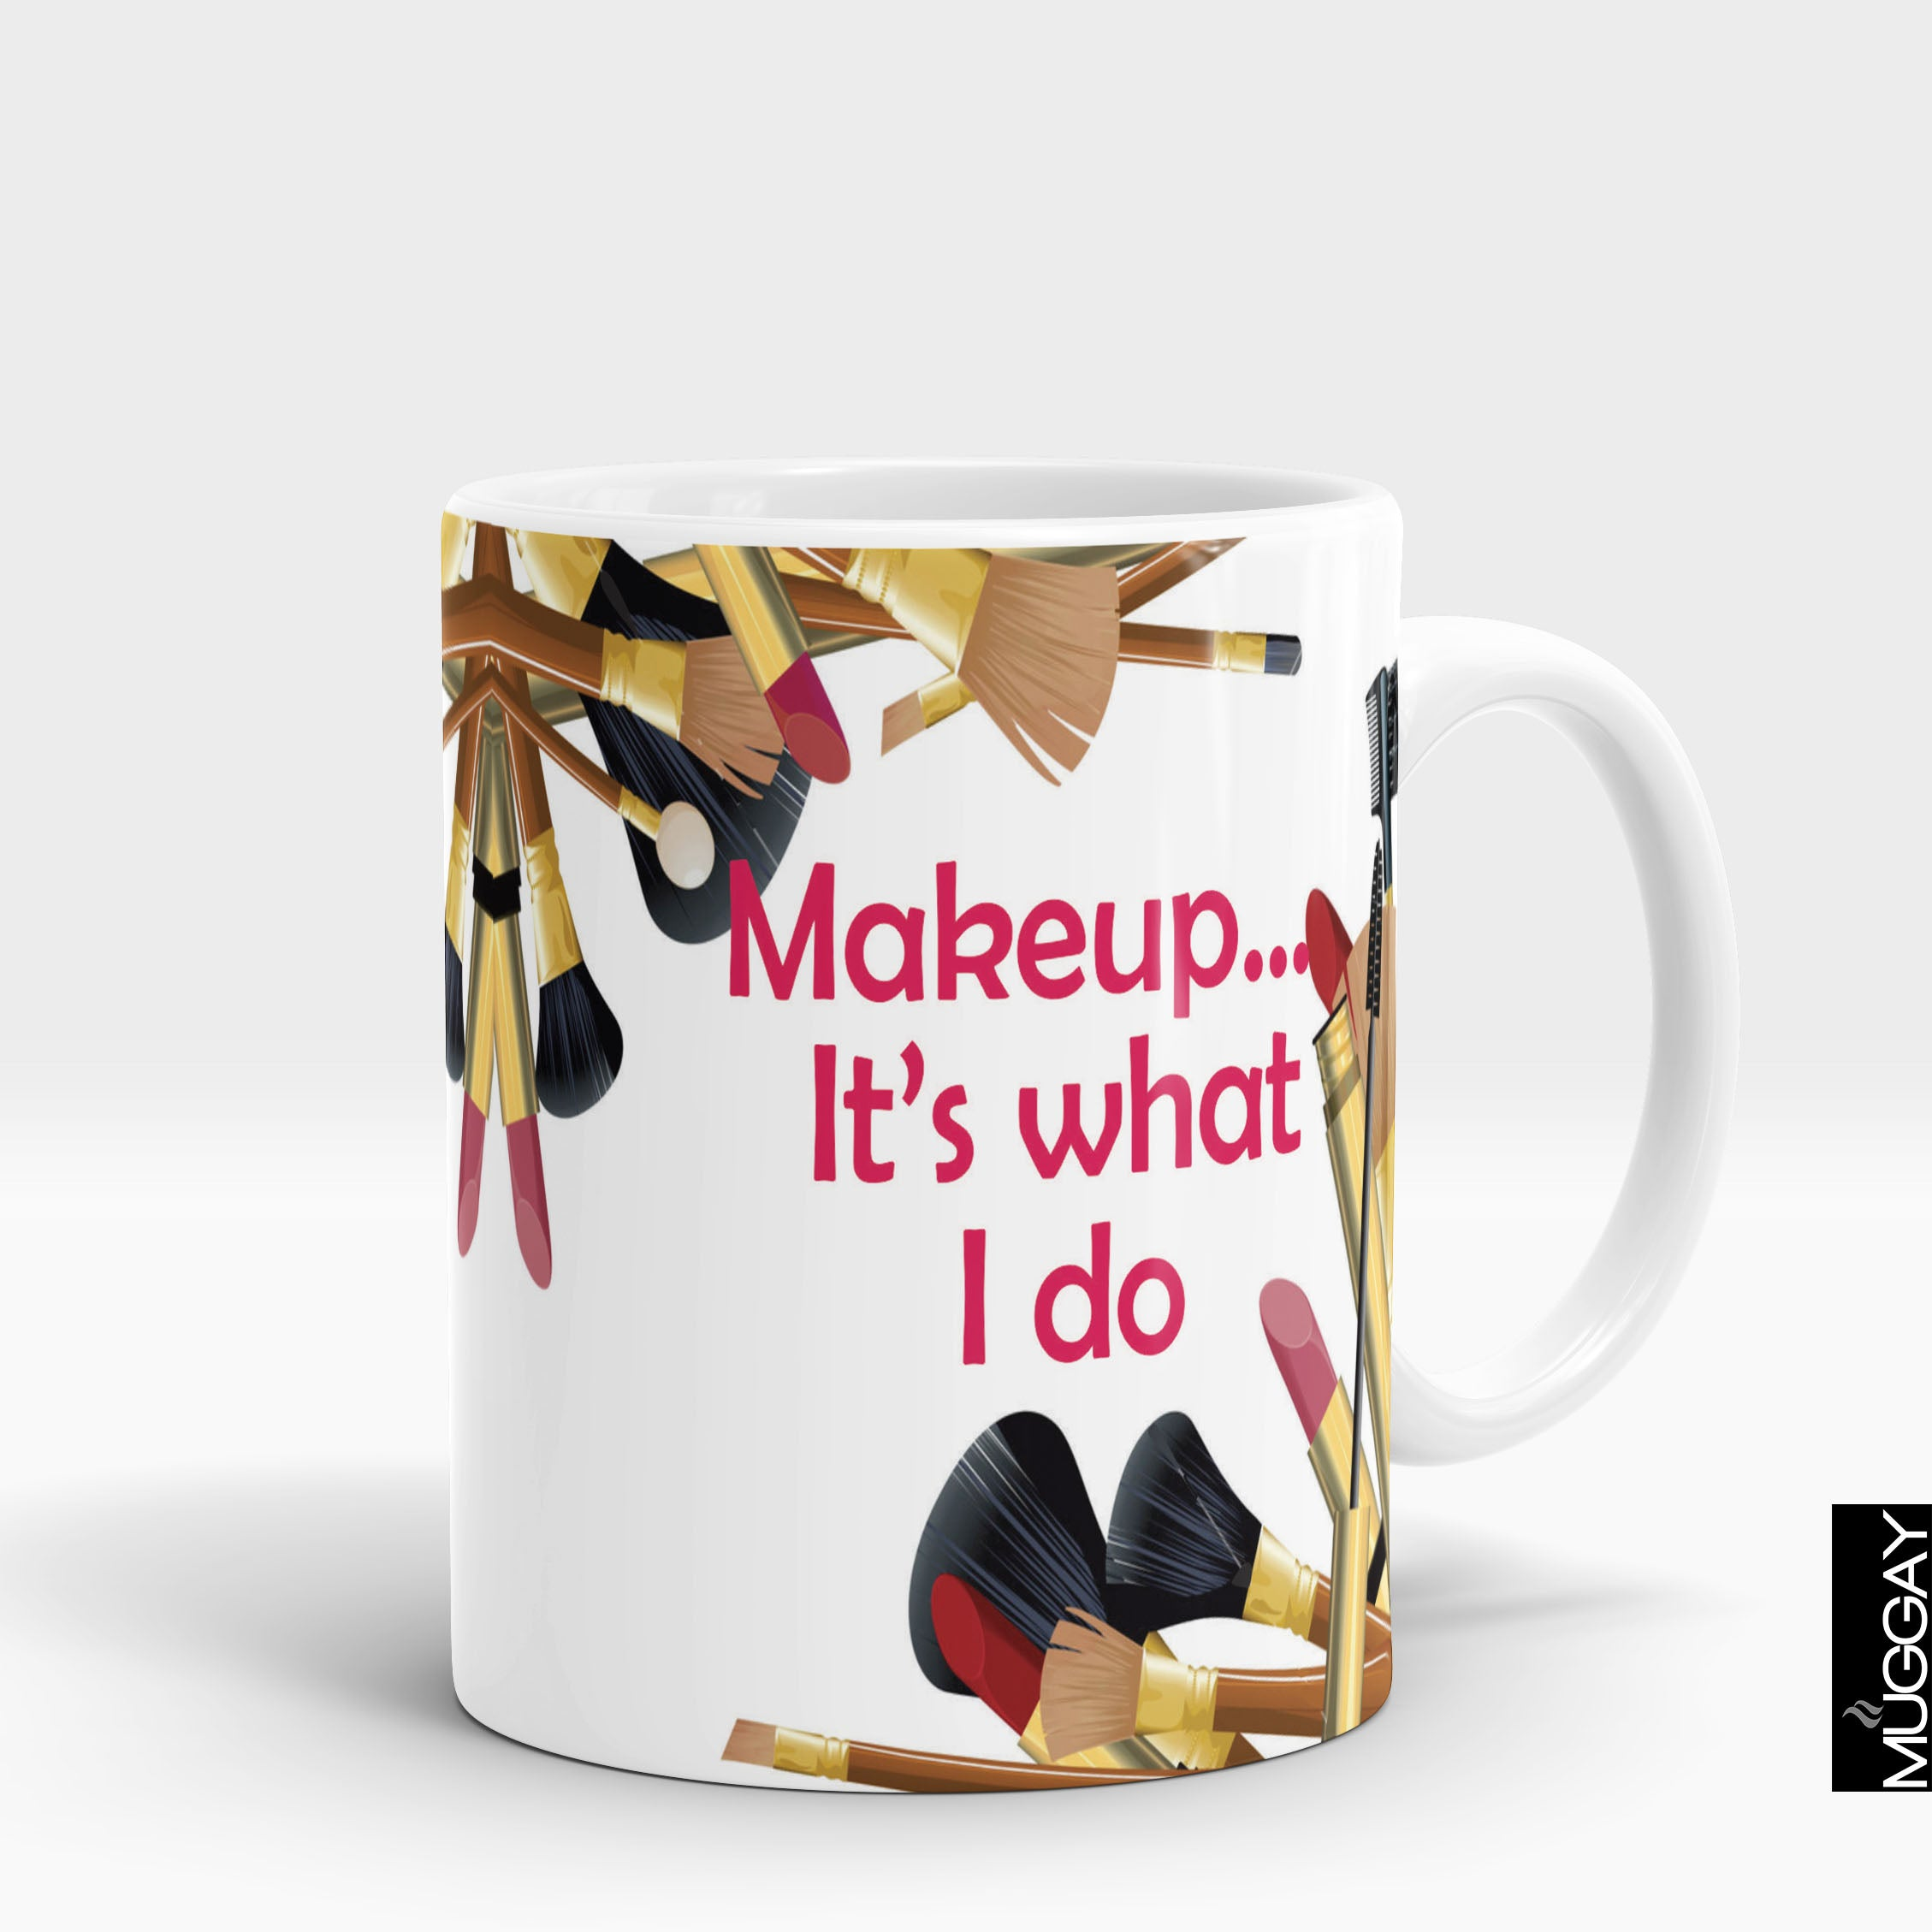 Makeup theme mugs -9